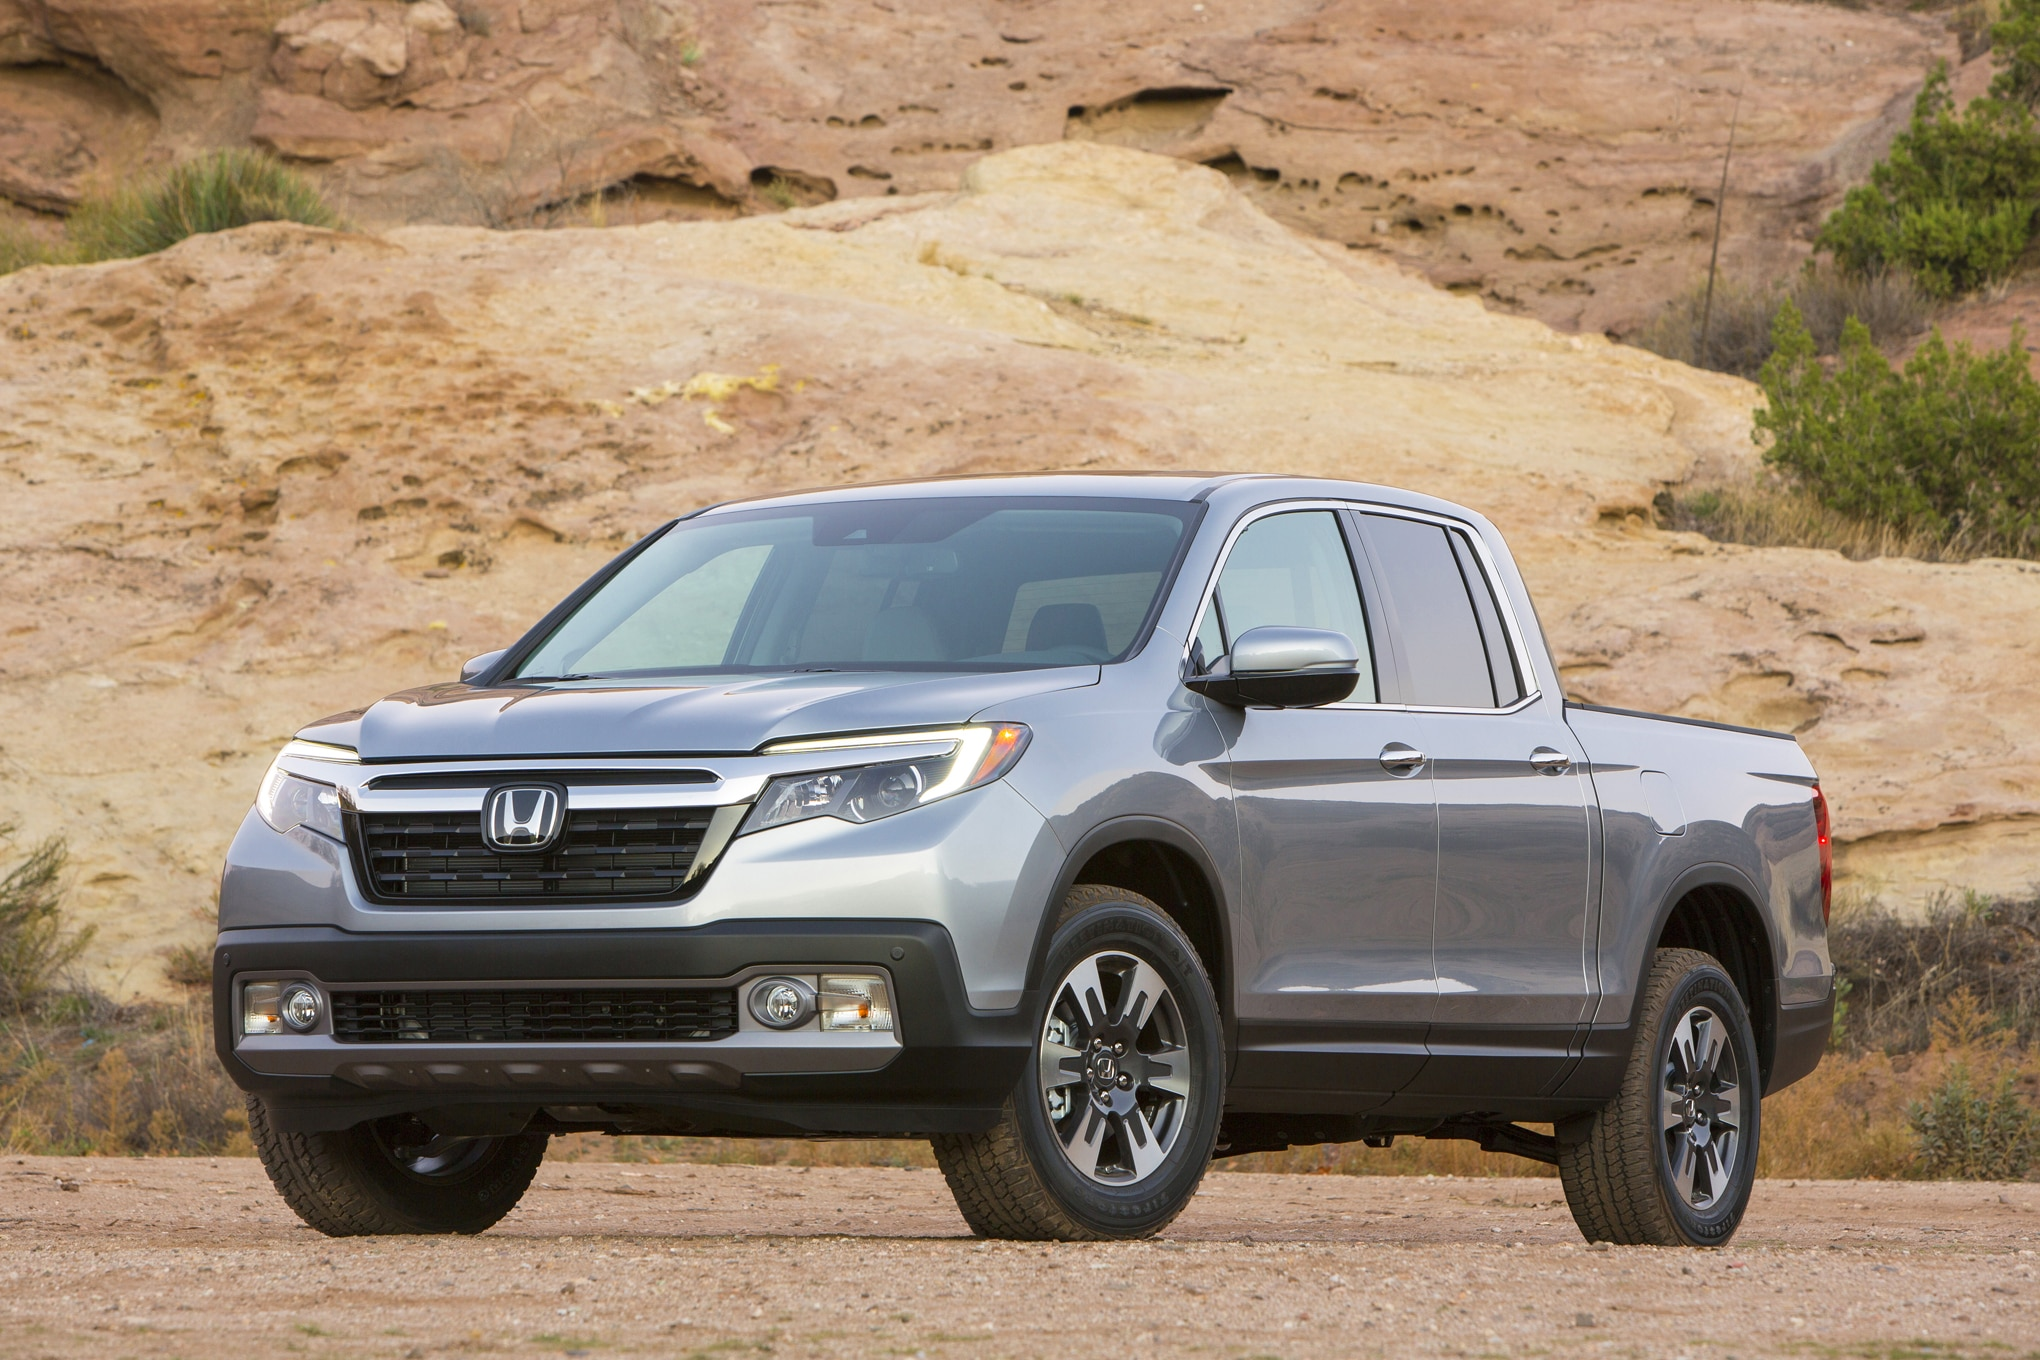 2017 honda ridgeline rated up to 26 mpg automobile magazine. Black Bedroom Furniture Sets. Home Design Ideas